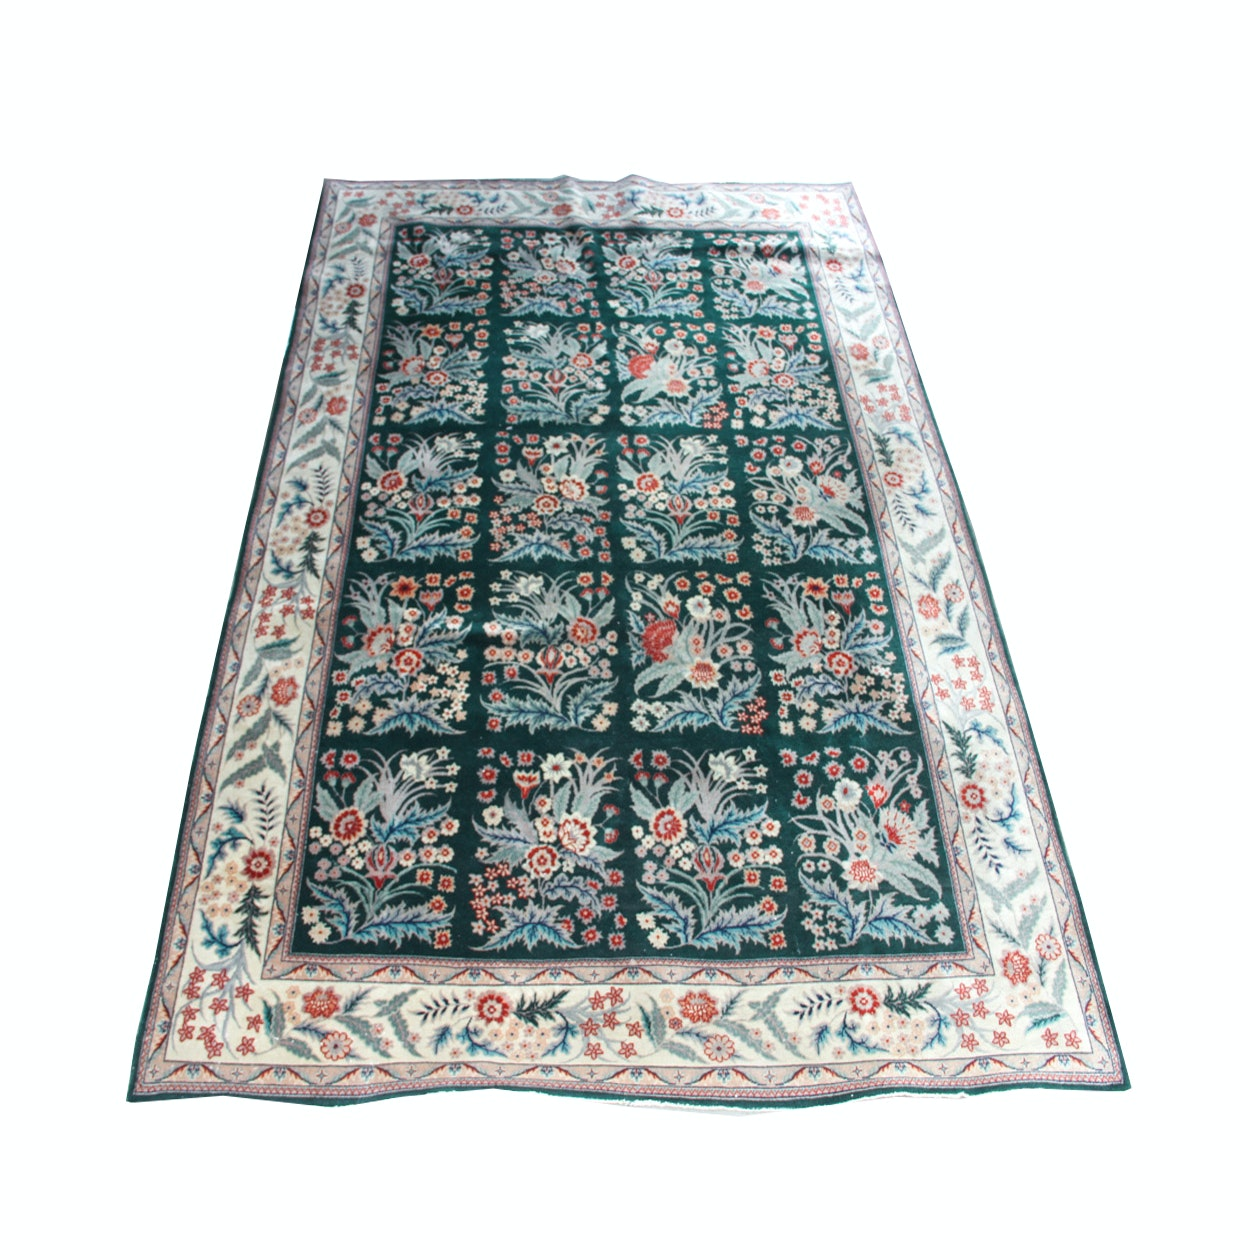 Handwoven Green Floral Rug